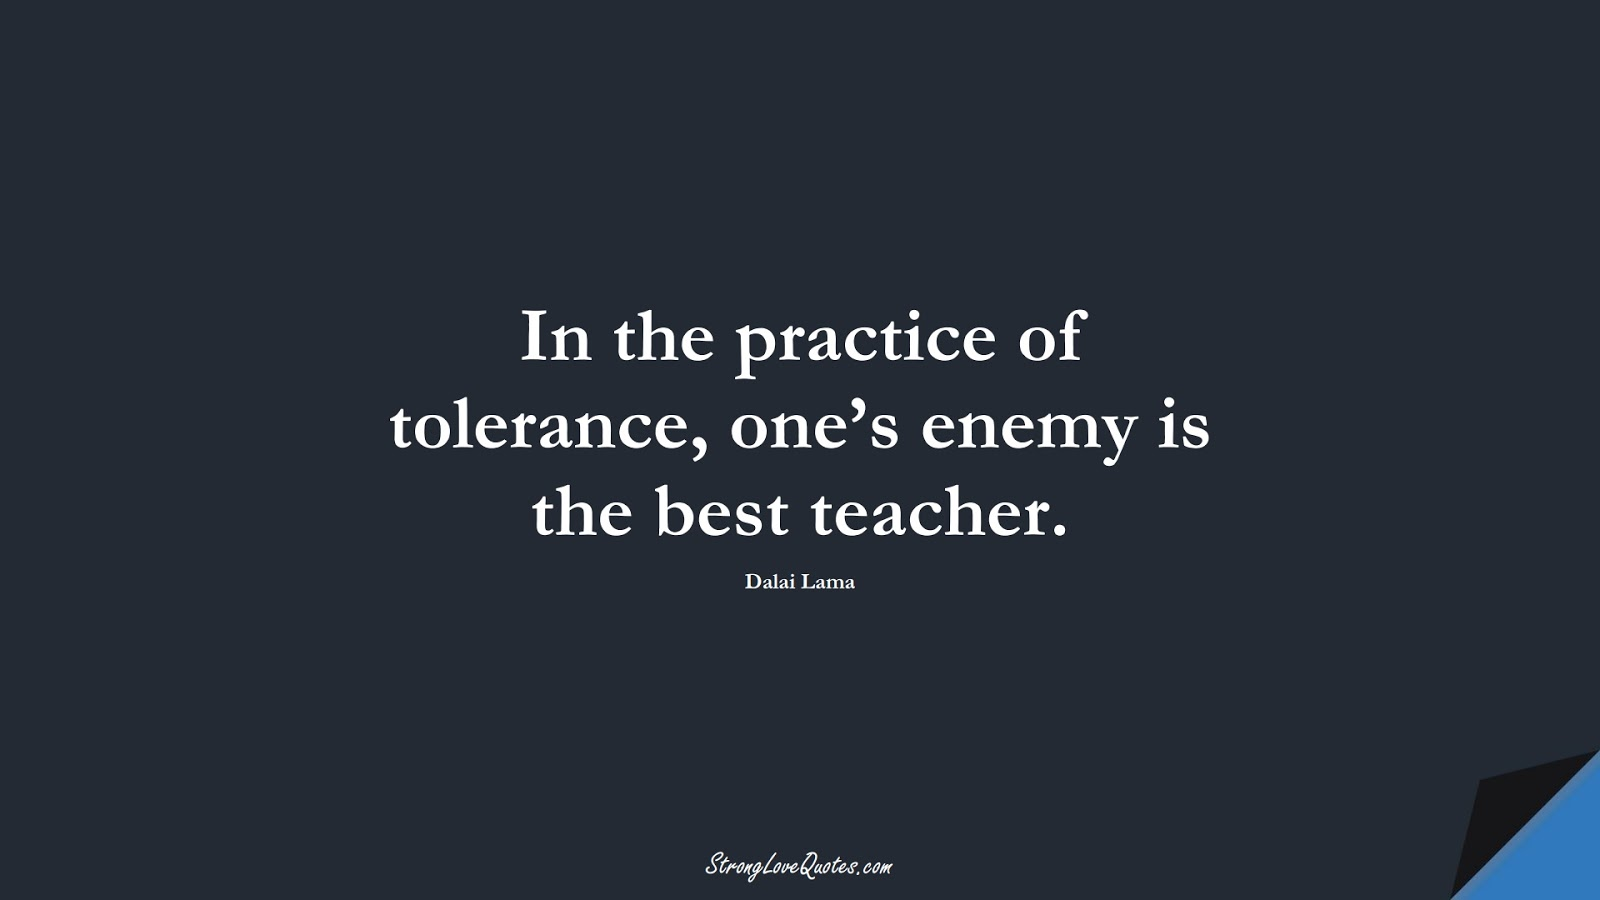 In the practice of tolerance, one's enemy is the best teacher. (Dalai Lama);  #LearningQuotes